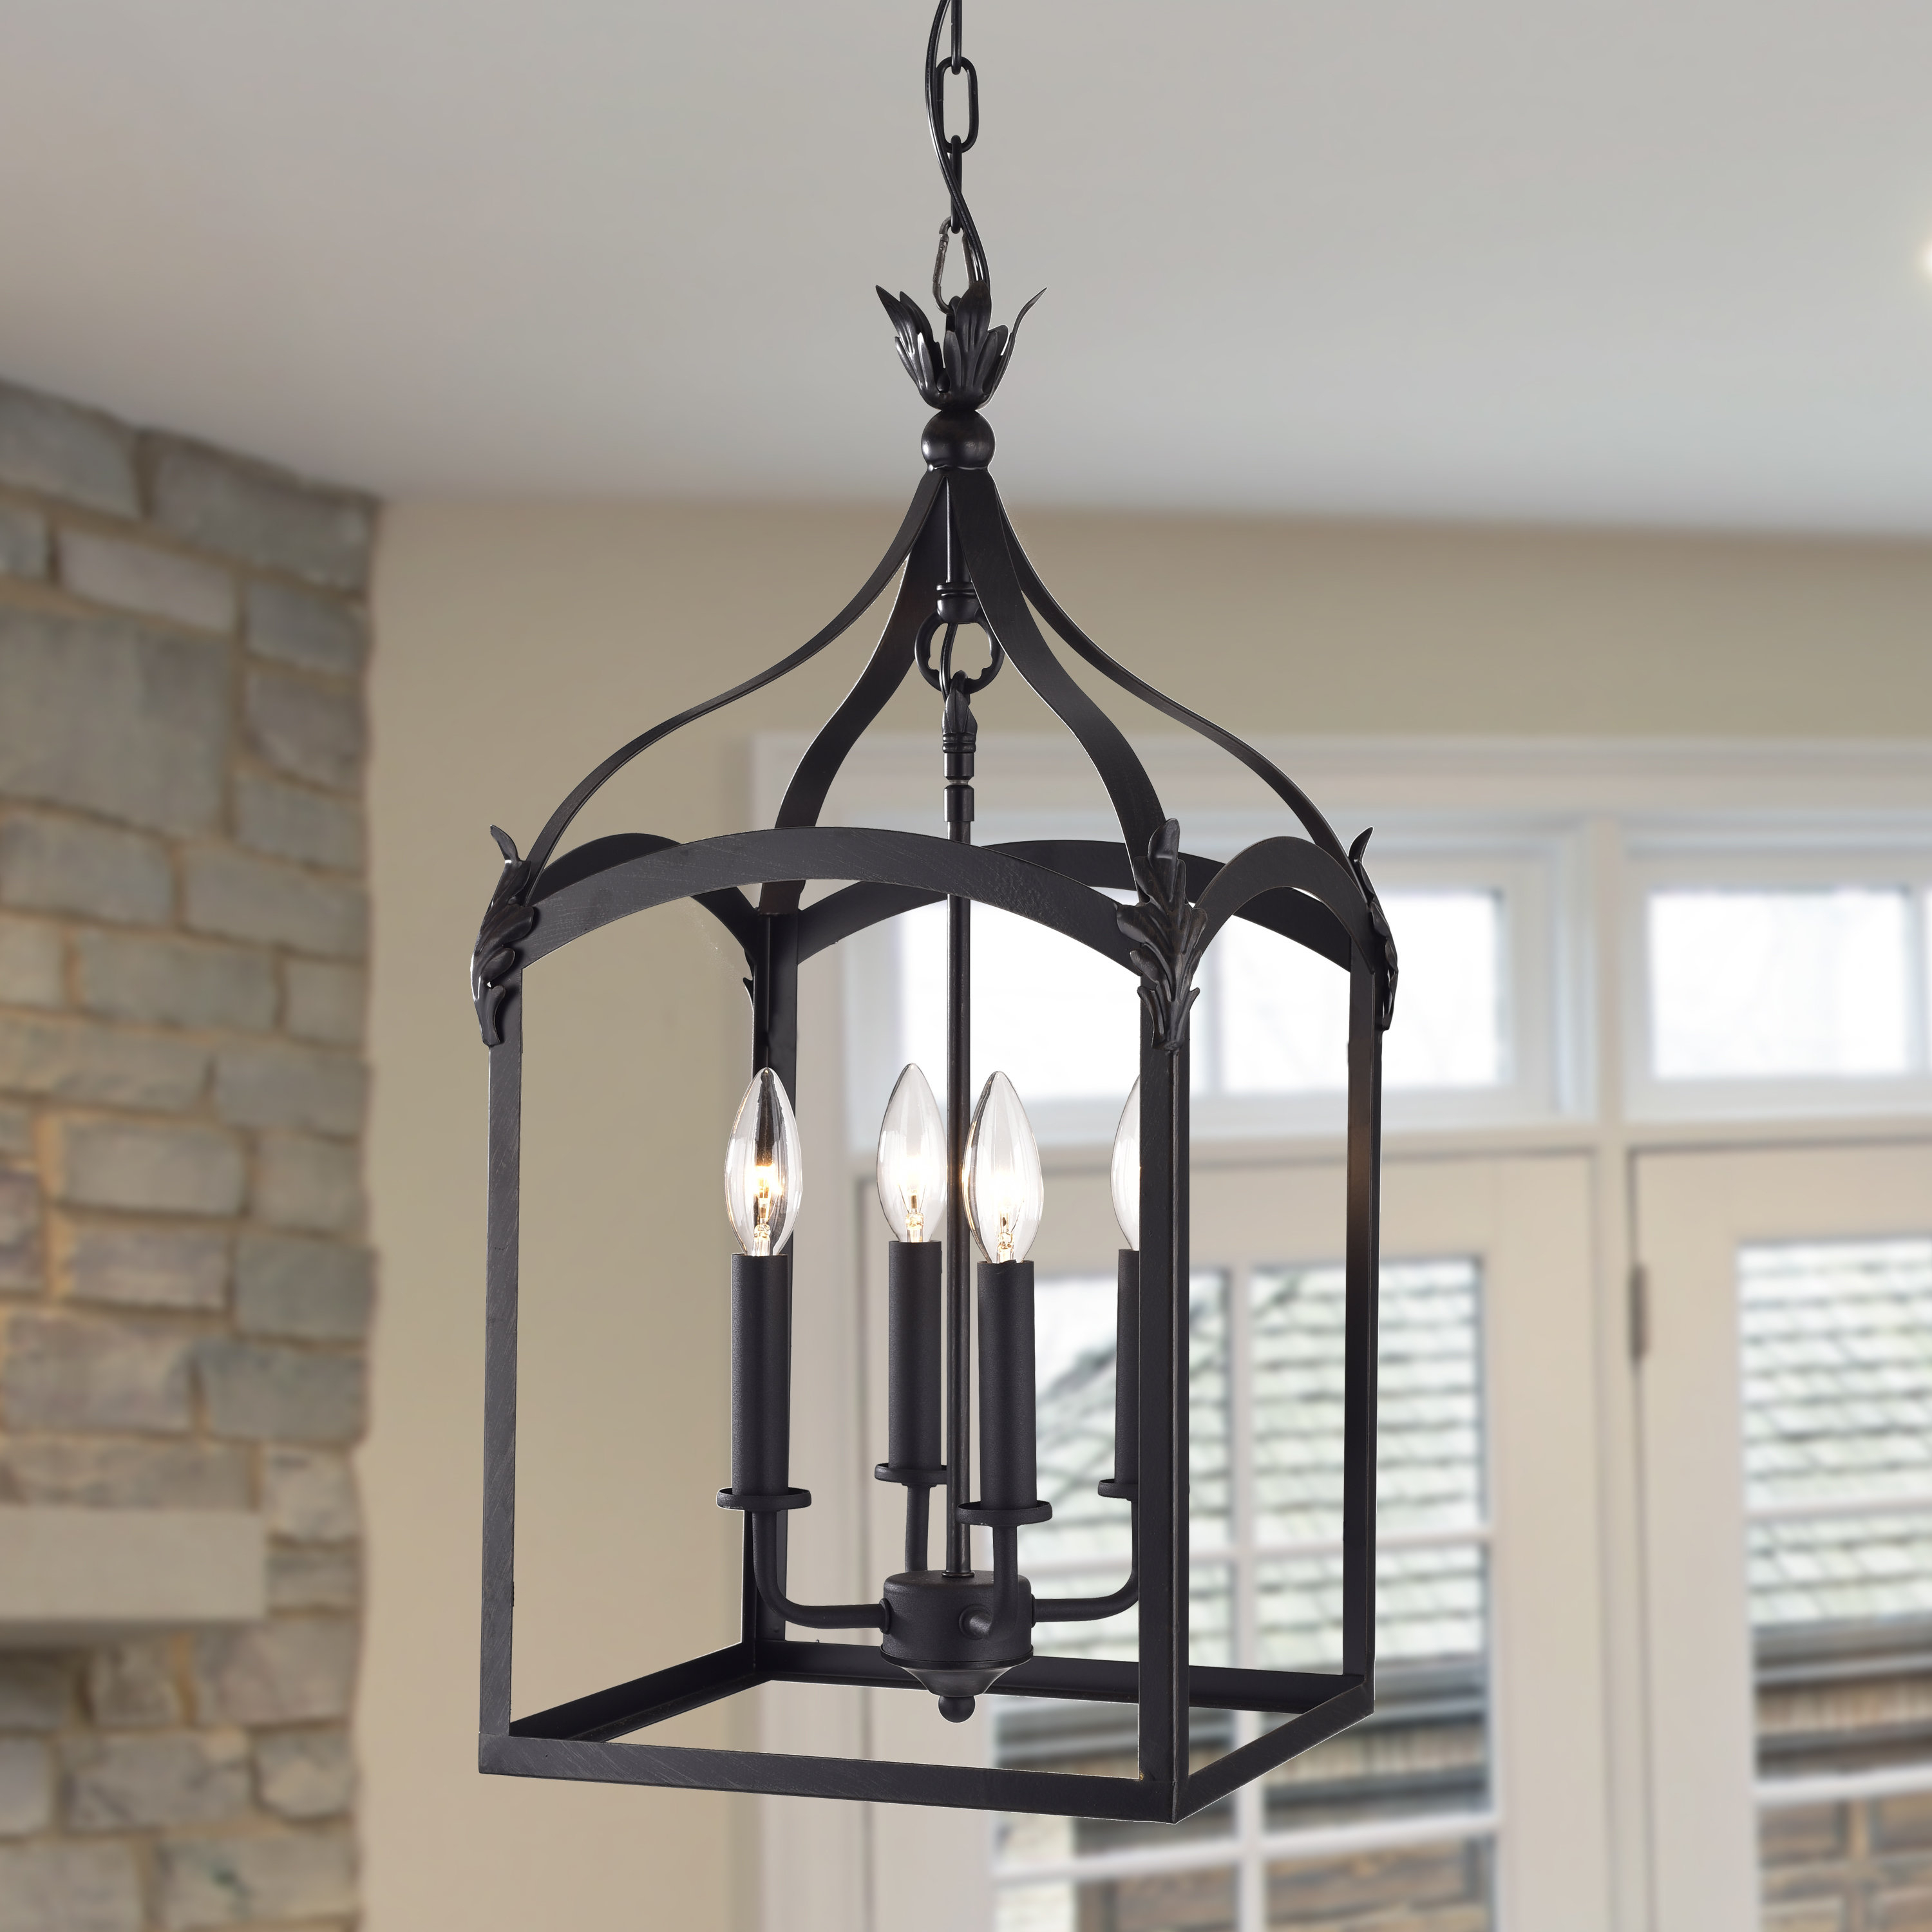 Darby Home Co Forsyth 4 Light Lantern Geometric Pendant With Regard To Recent Nisbet 4 Light Lantern Geometric Pendants (View 4 of 20)